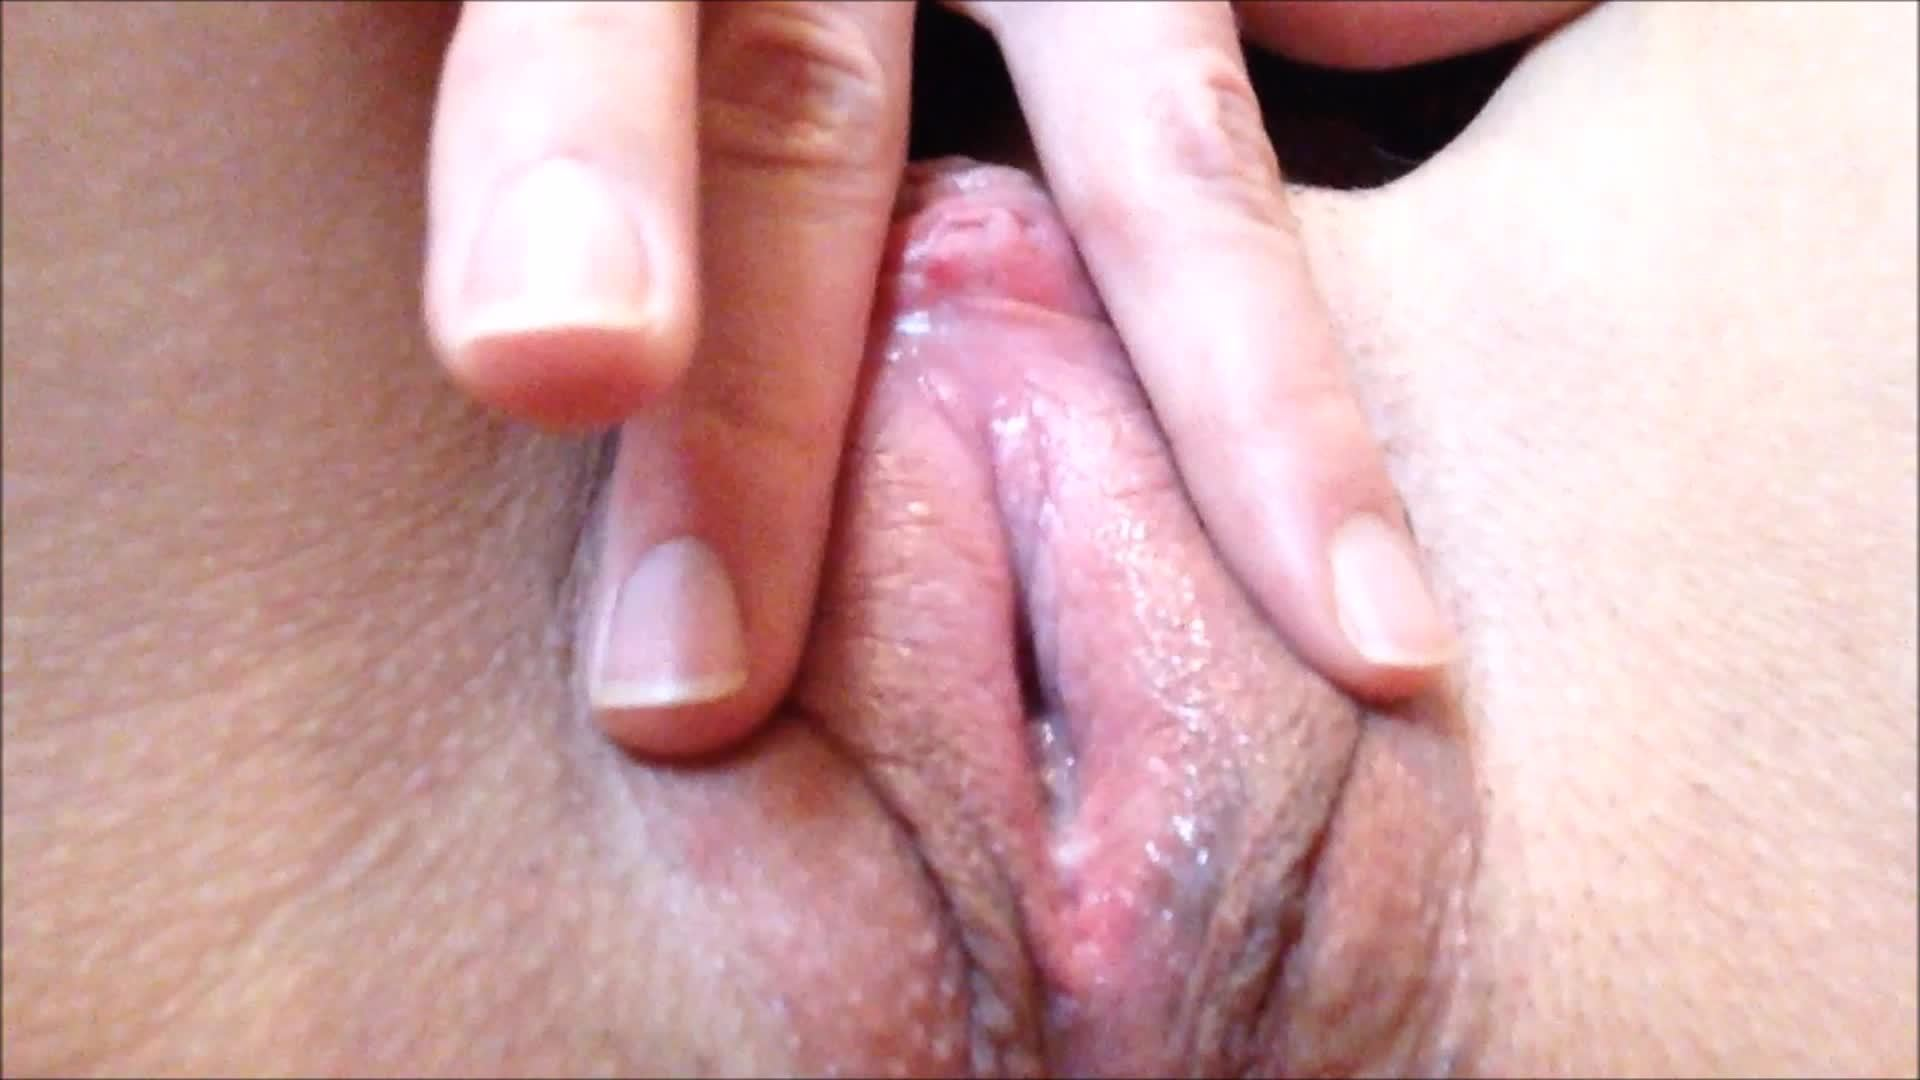 Shaking My Ass and Fucking My Pussy. I CUM TWICE